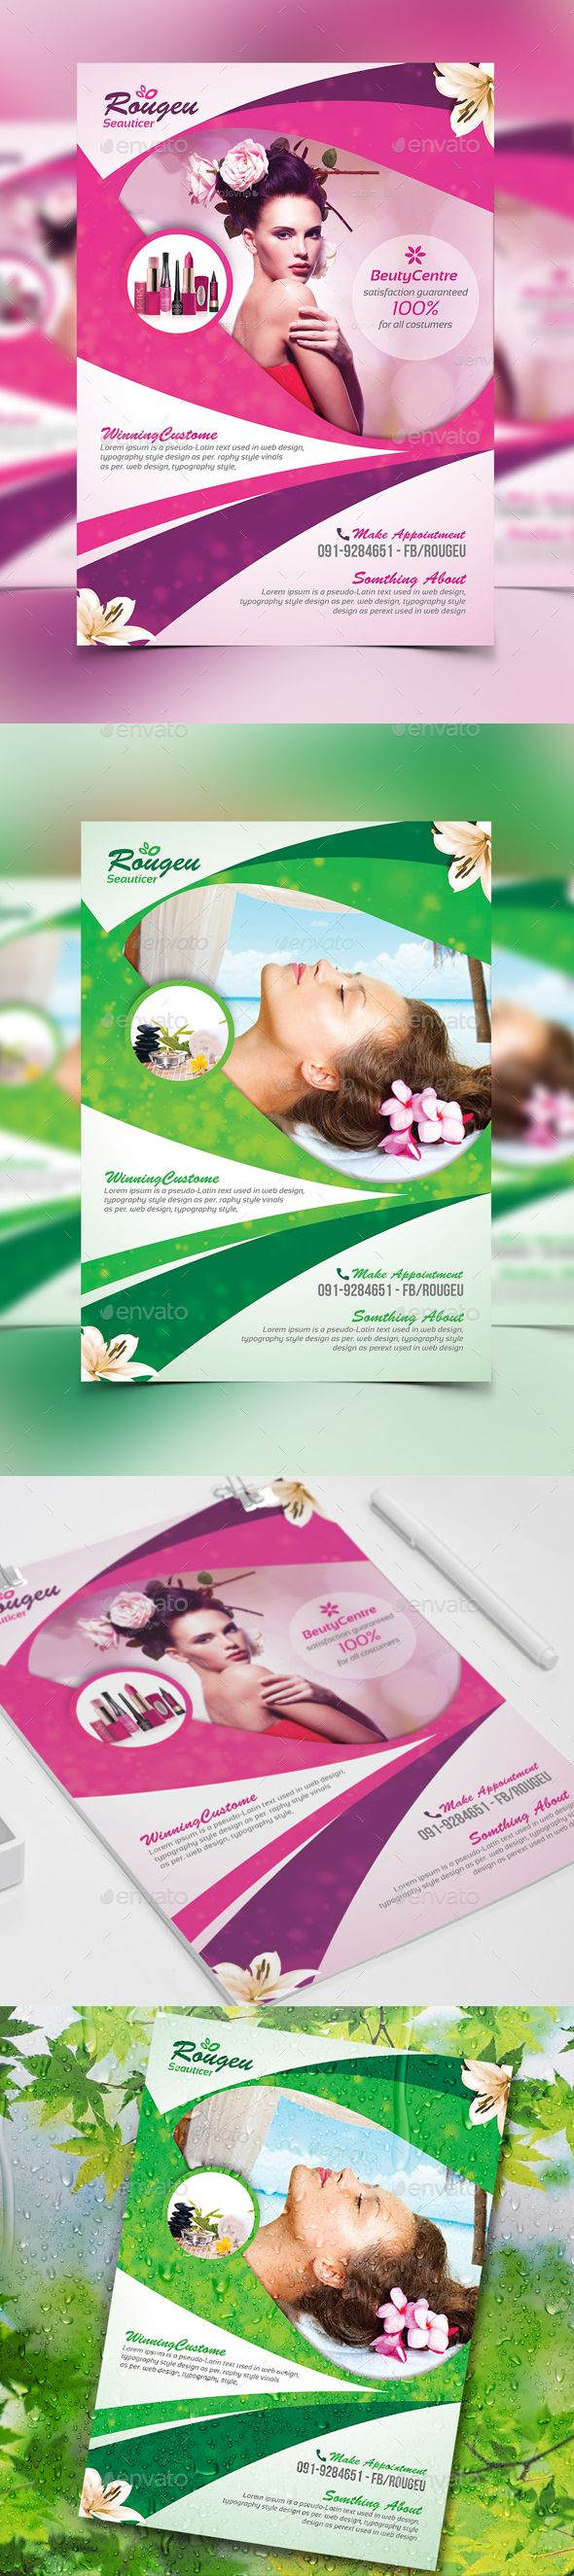 Beauty Salon Spa - Flyer Template PSD #design Download: http://graphicriver.net/item/beauty-salon-spa-flyer/13931580?ref=ksioks